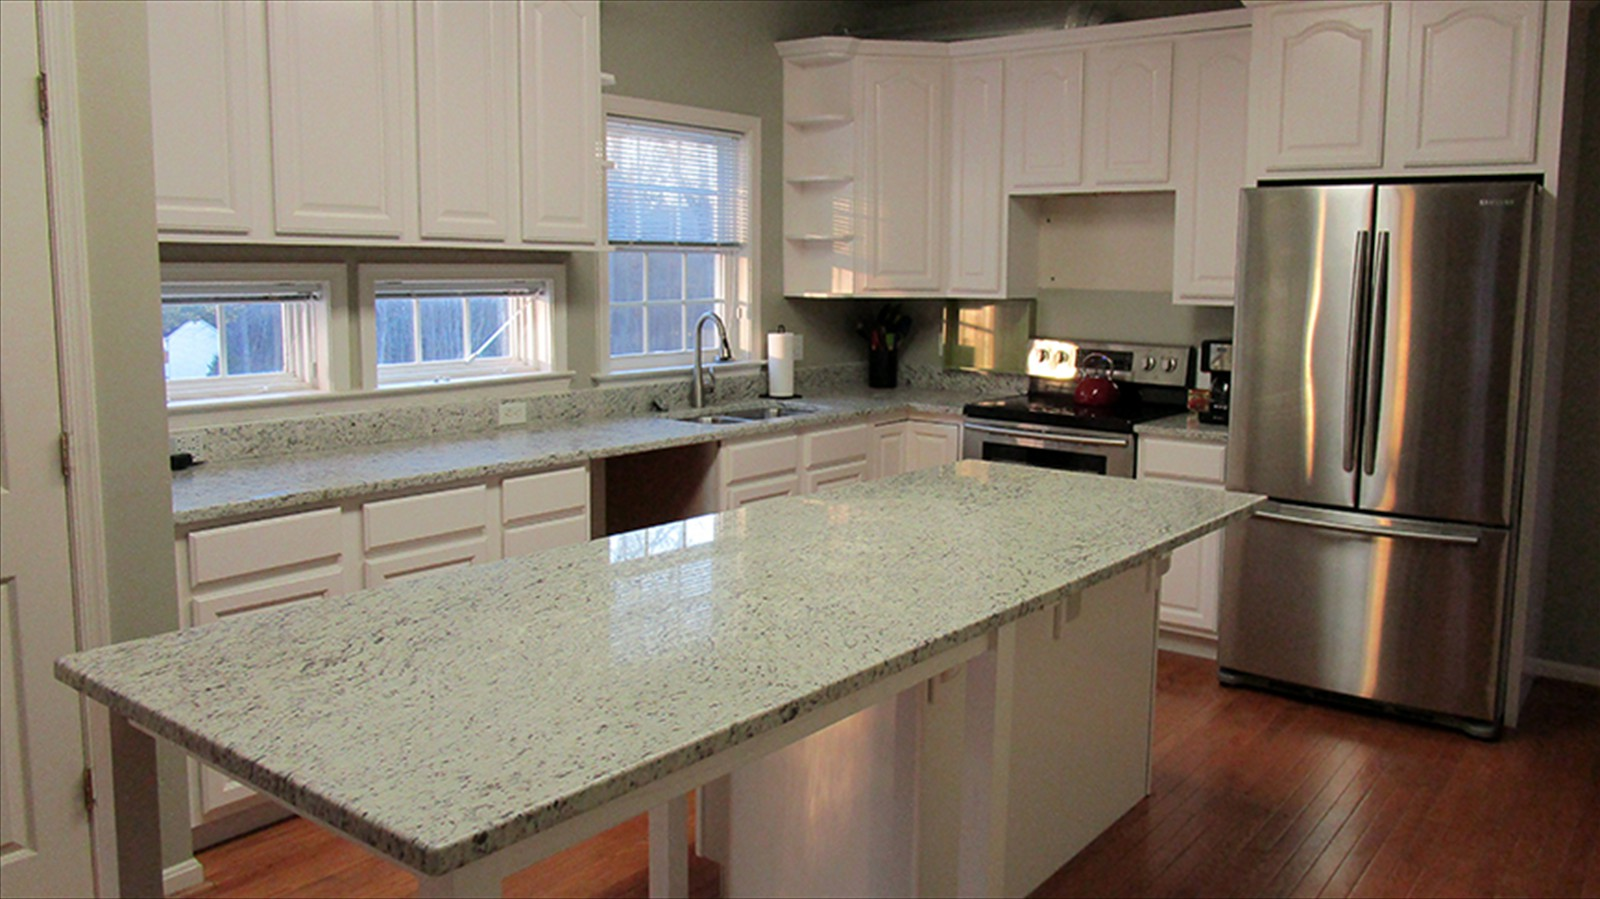 Elite Countertops Fredericksburg Virginia Kitchen Remodeling, Granite,  Cabinet Refinishing, Bathroom Design, Vanities